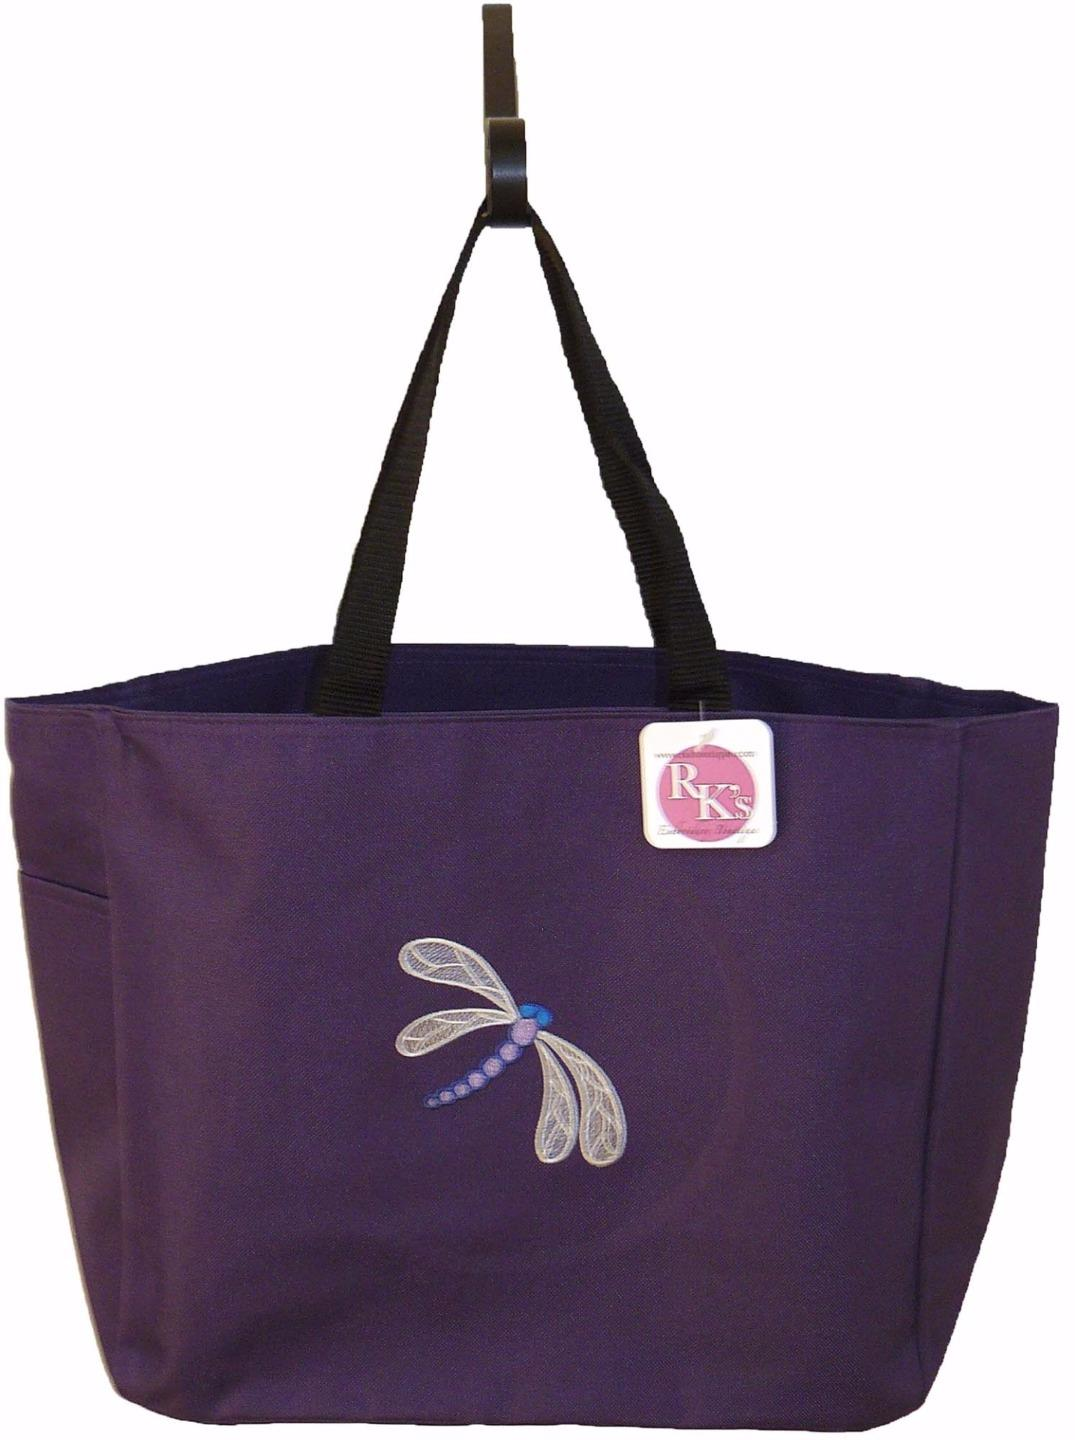 Intricate dragonfly beach bag monogram custom embroidered